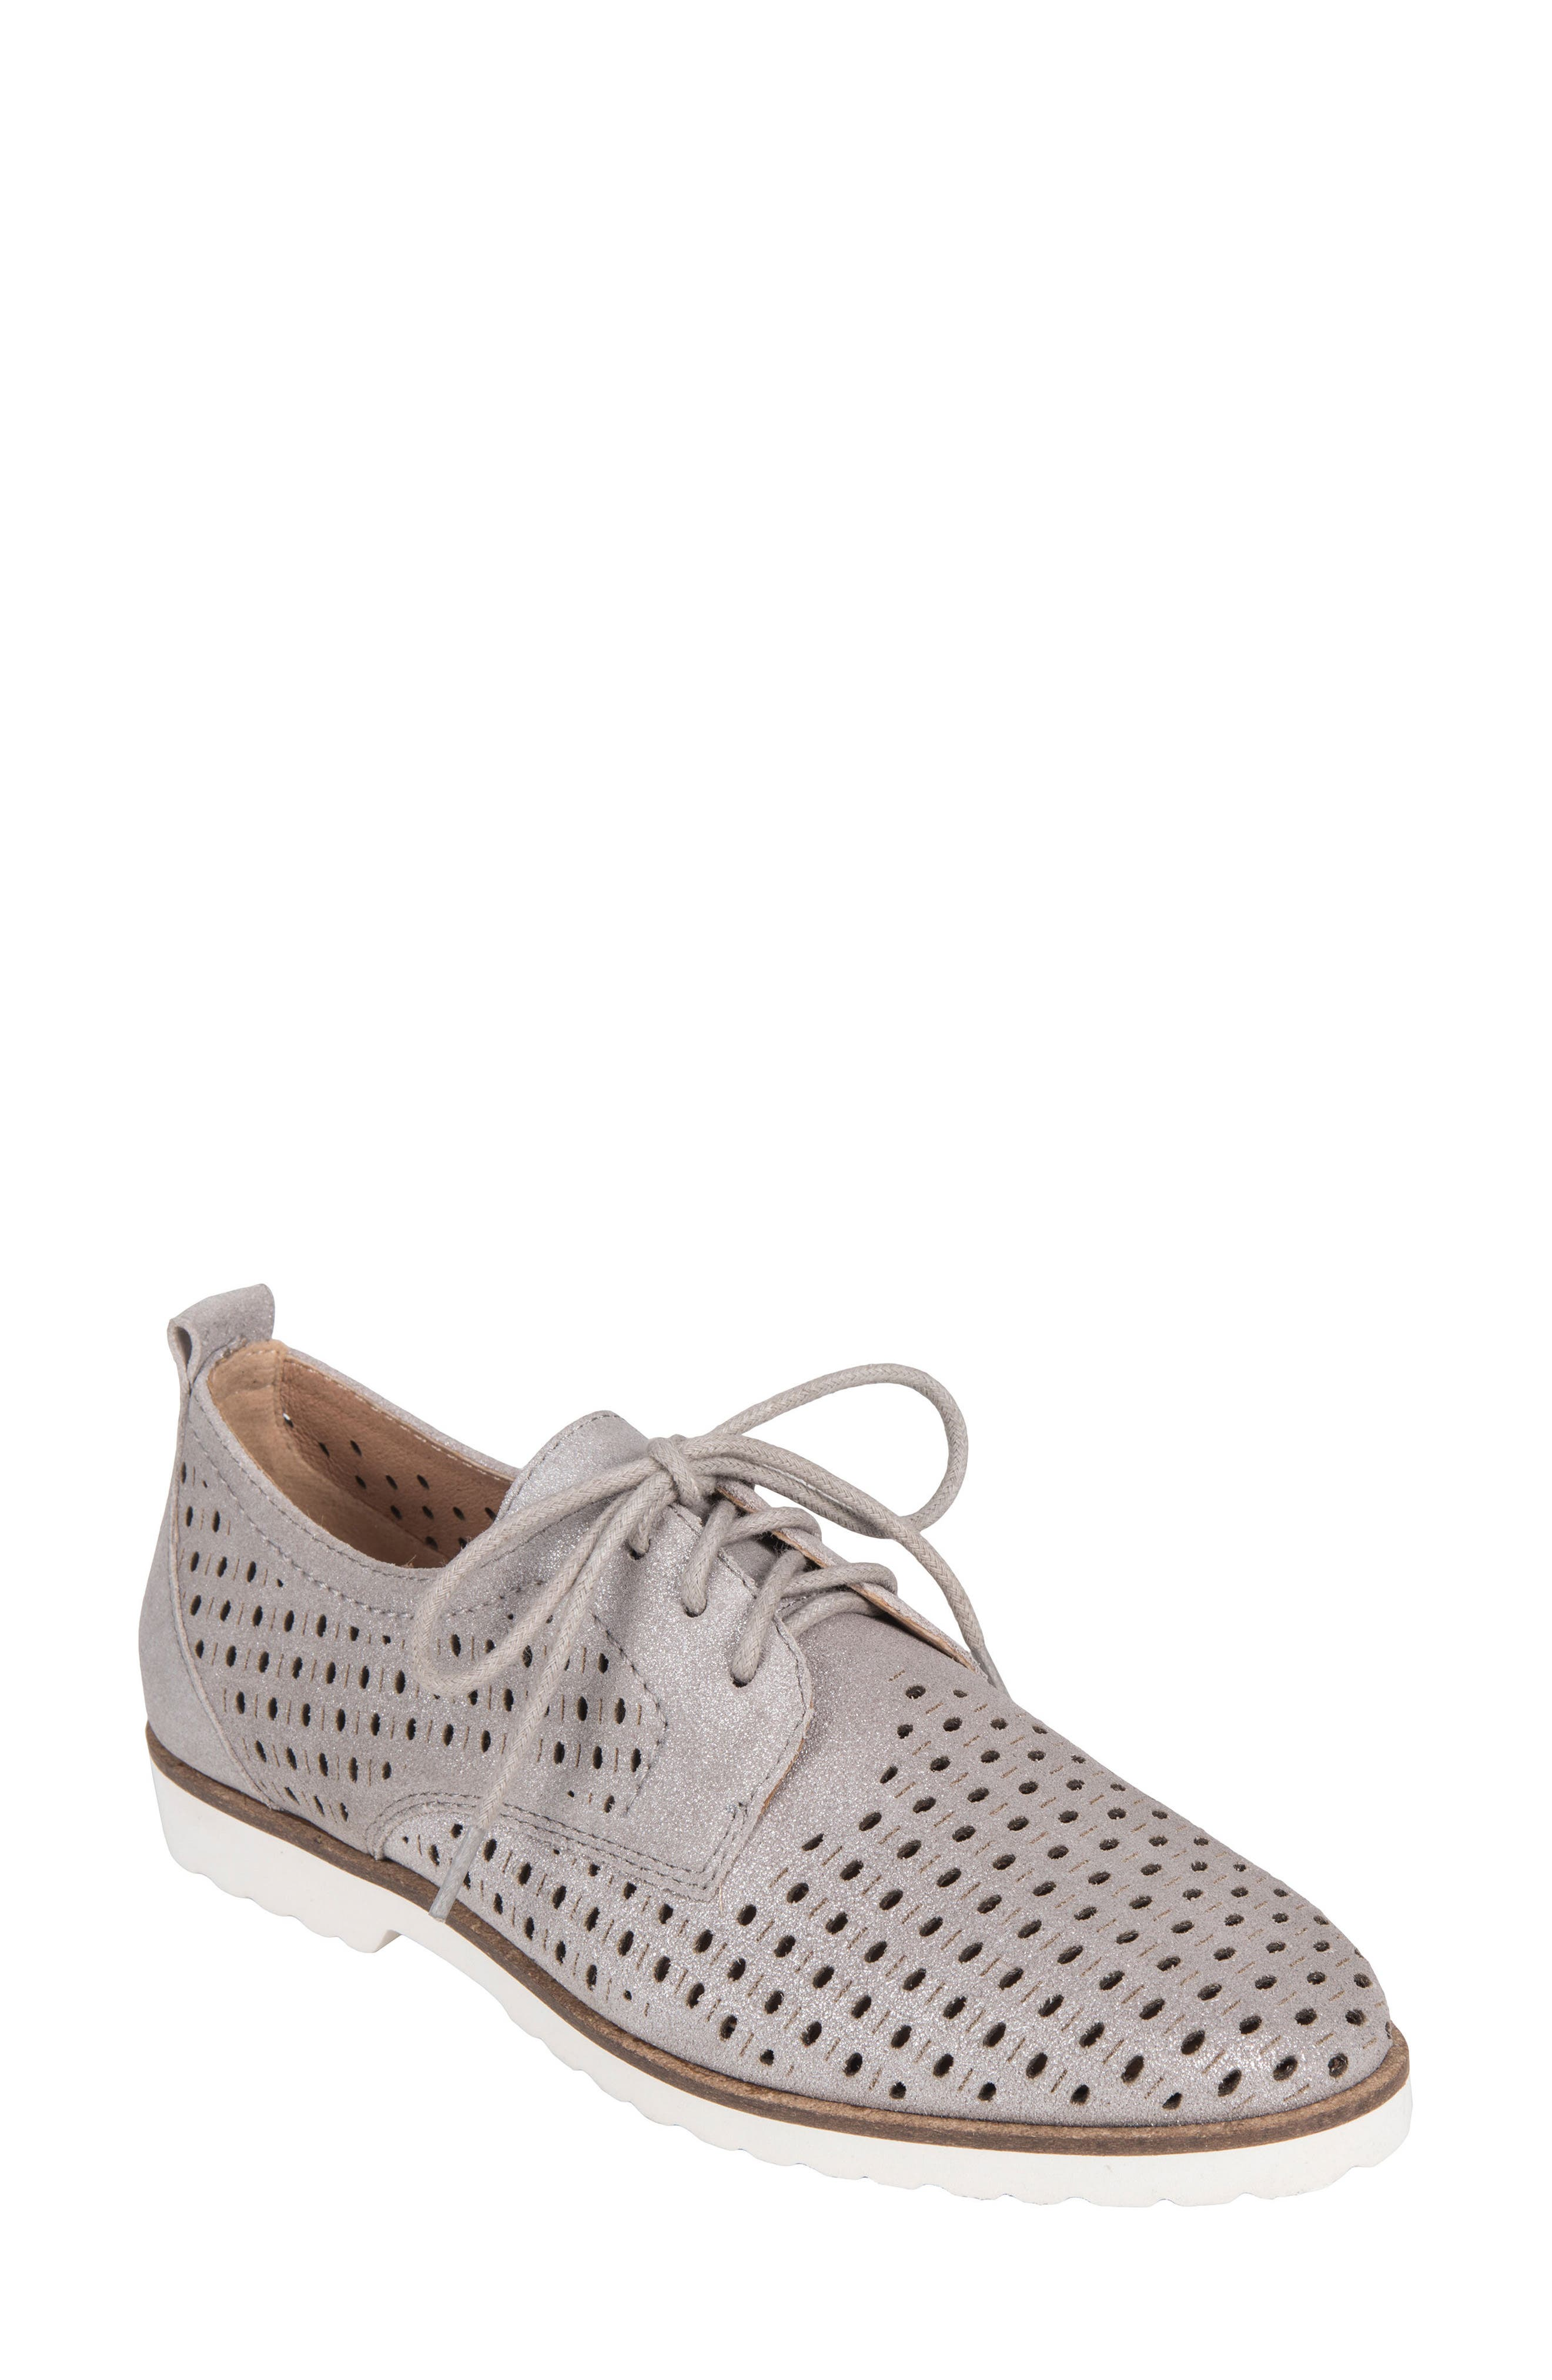 Camino Perforated Sneaker,                             Main thumbnail 1, color,                             SILVER METALLIC SUEDE